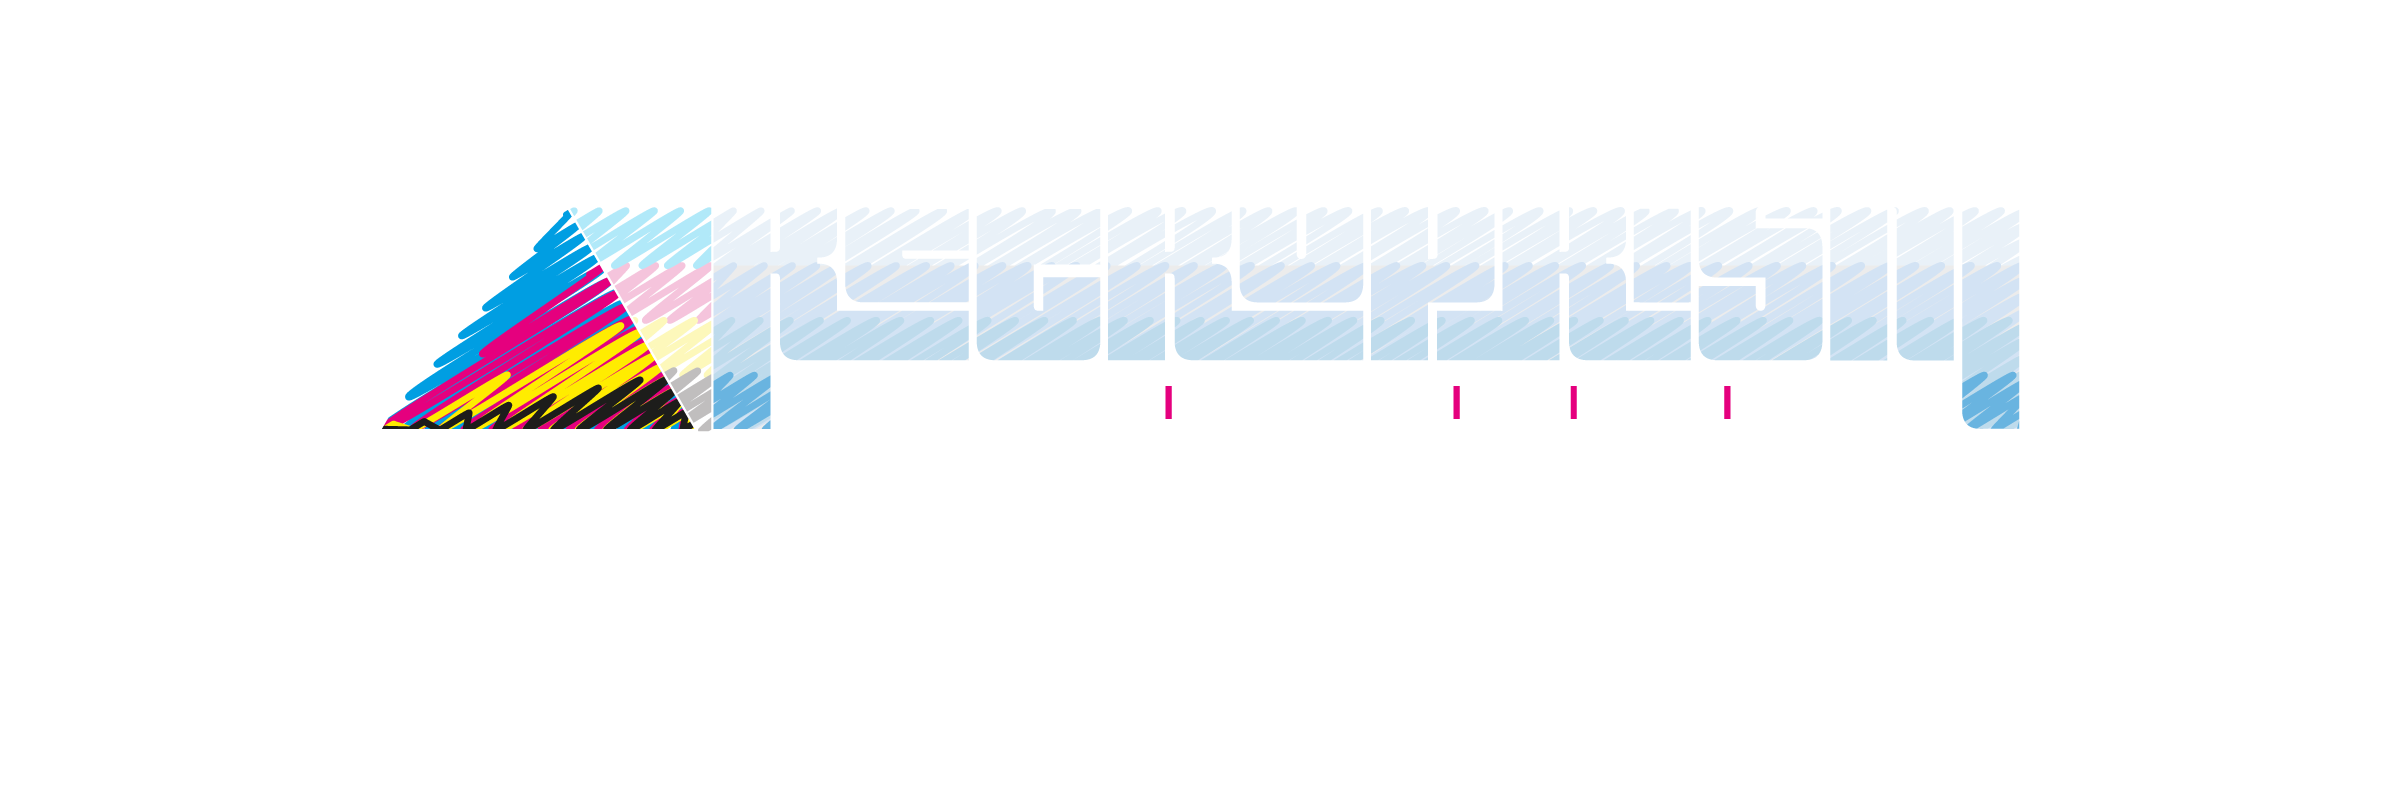 Retroprism Designs, Print & Signs